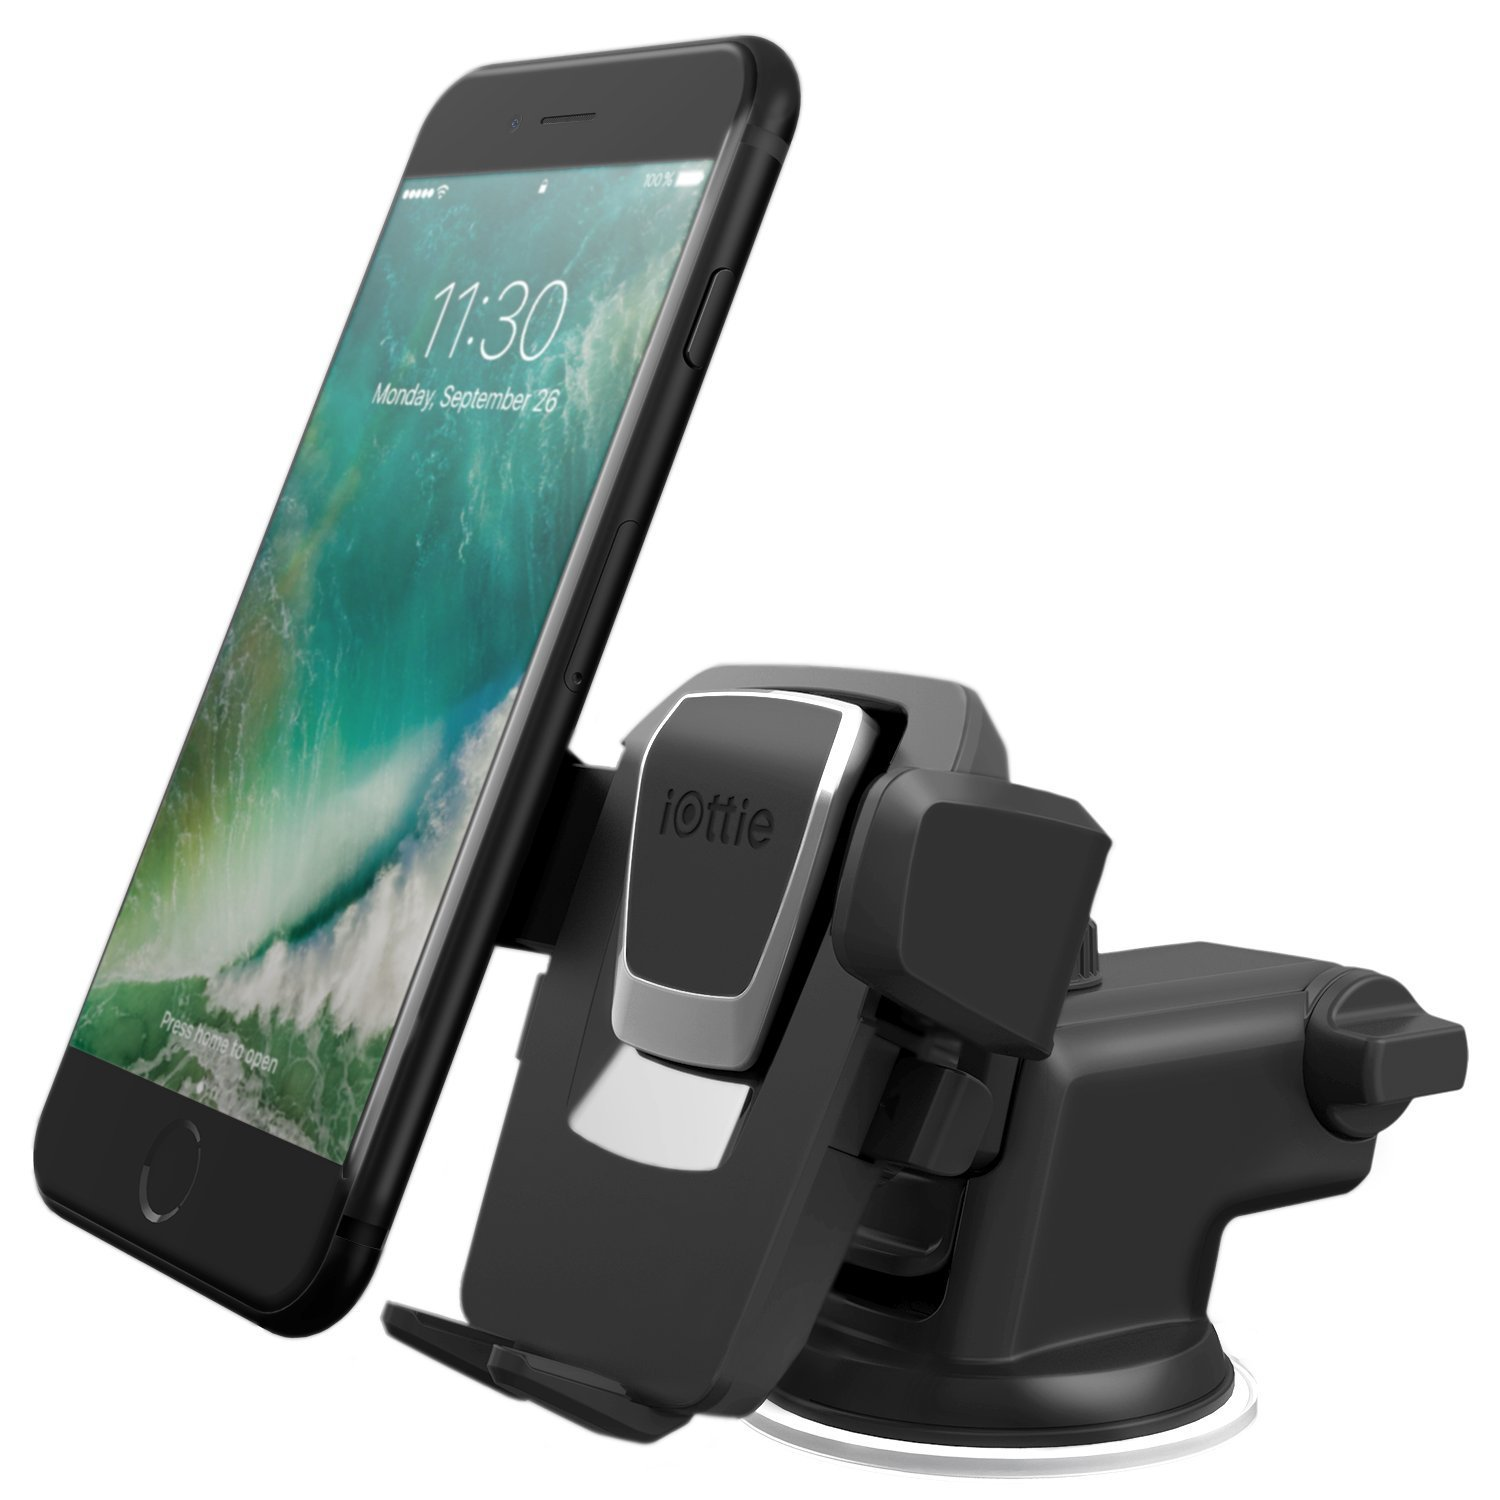 Iottie Smartphone Holder